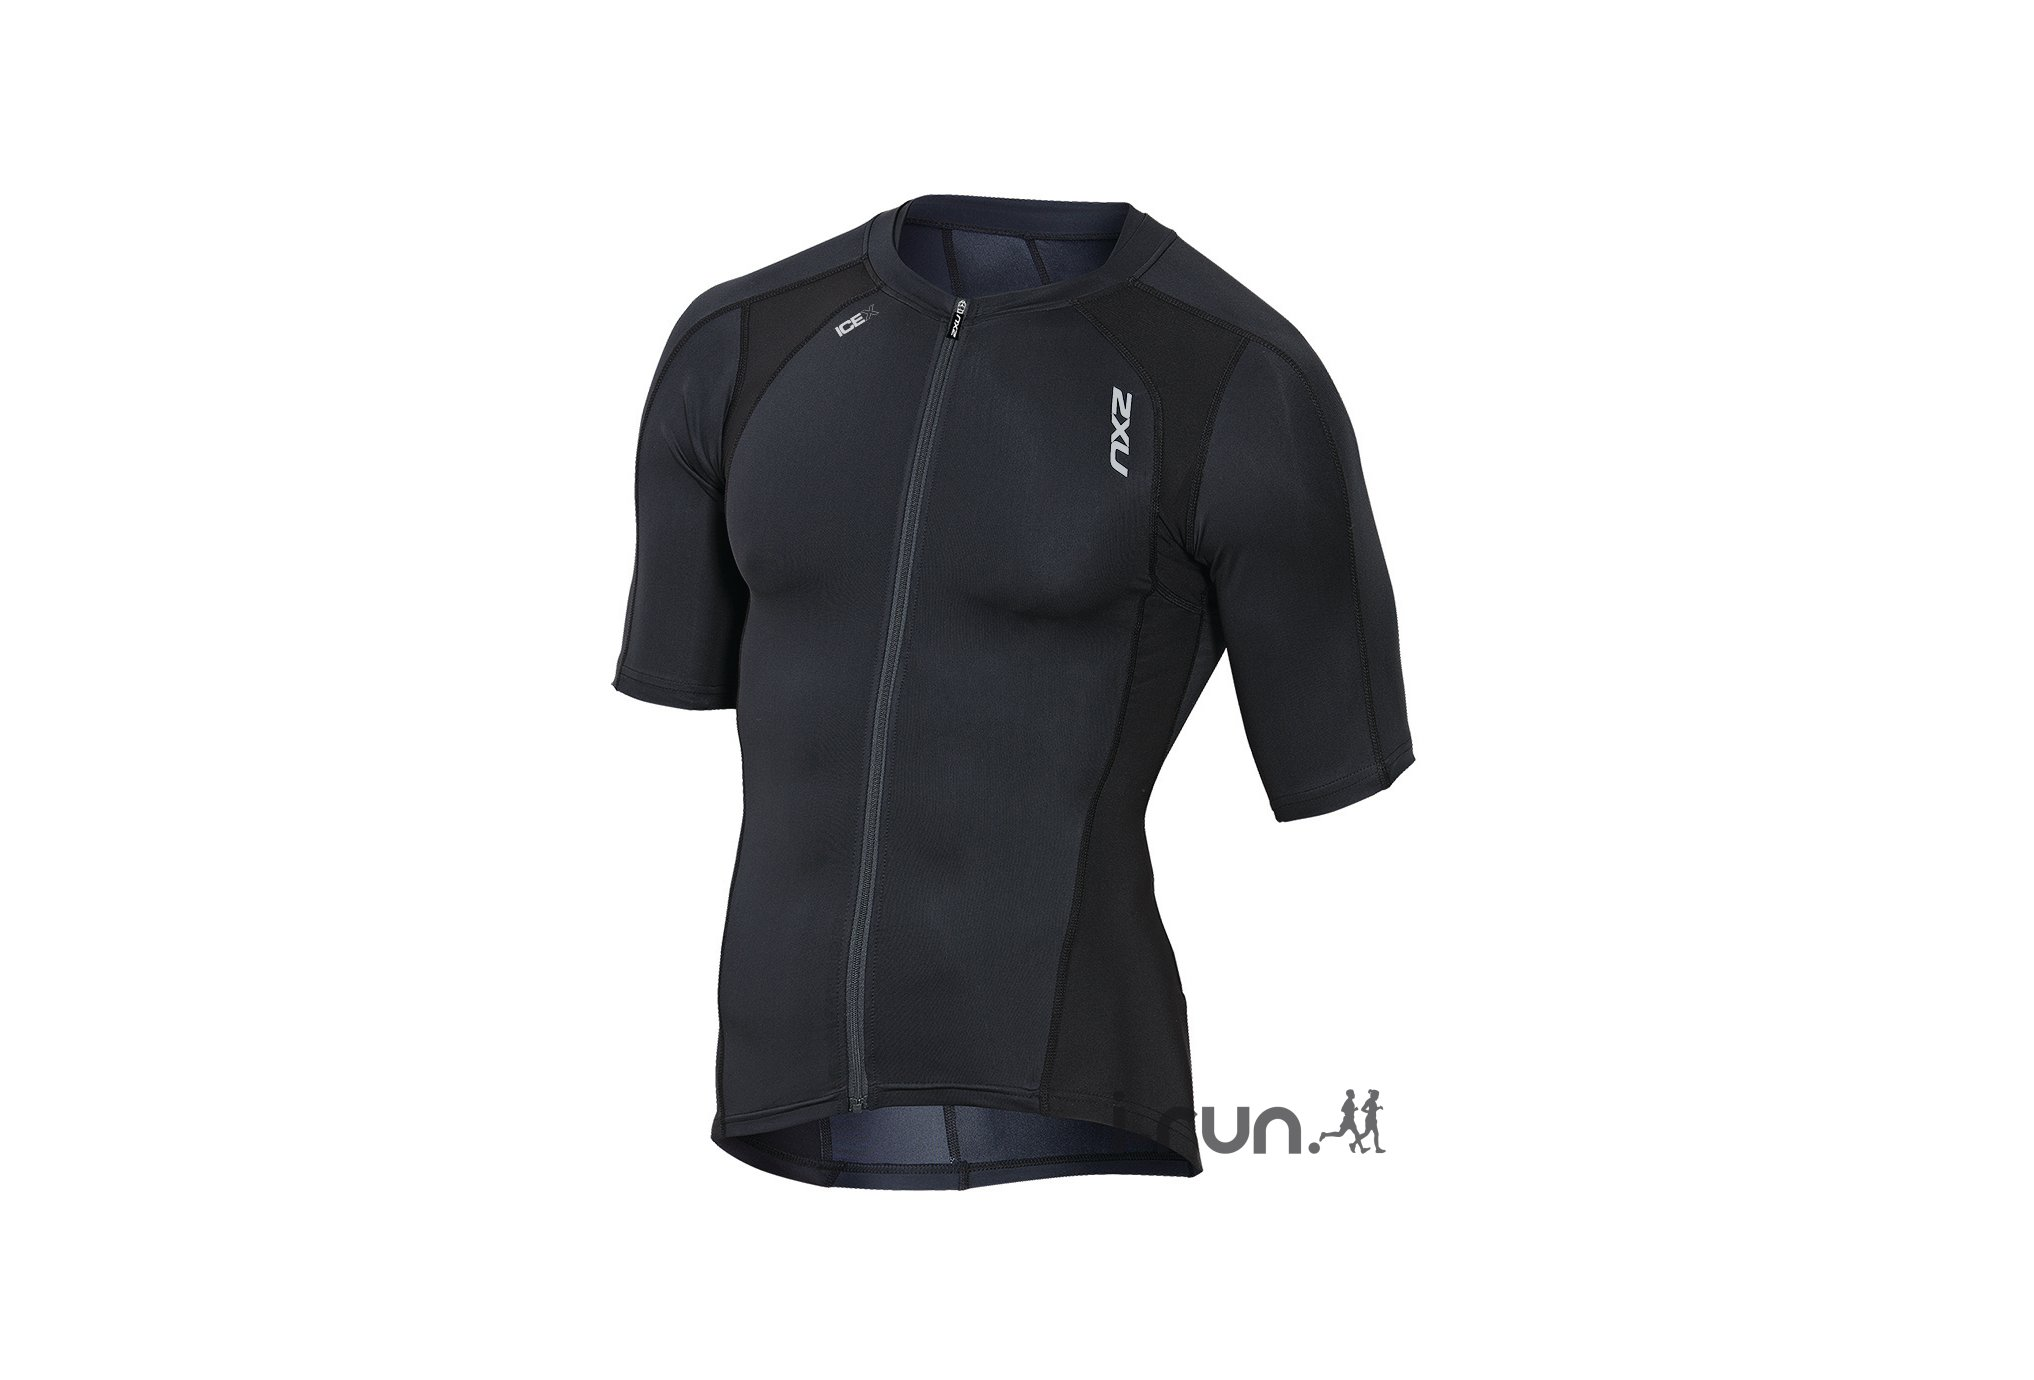 2xu Maillot compression tri m vêtement running homme